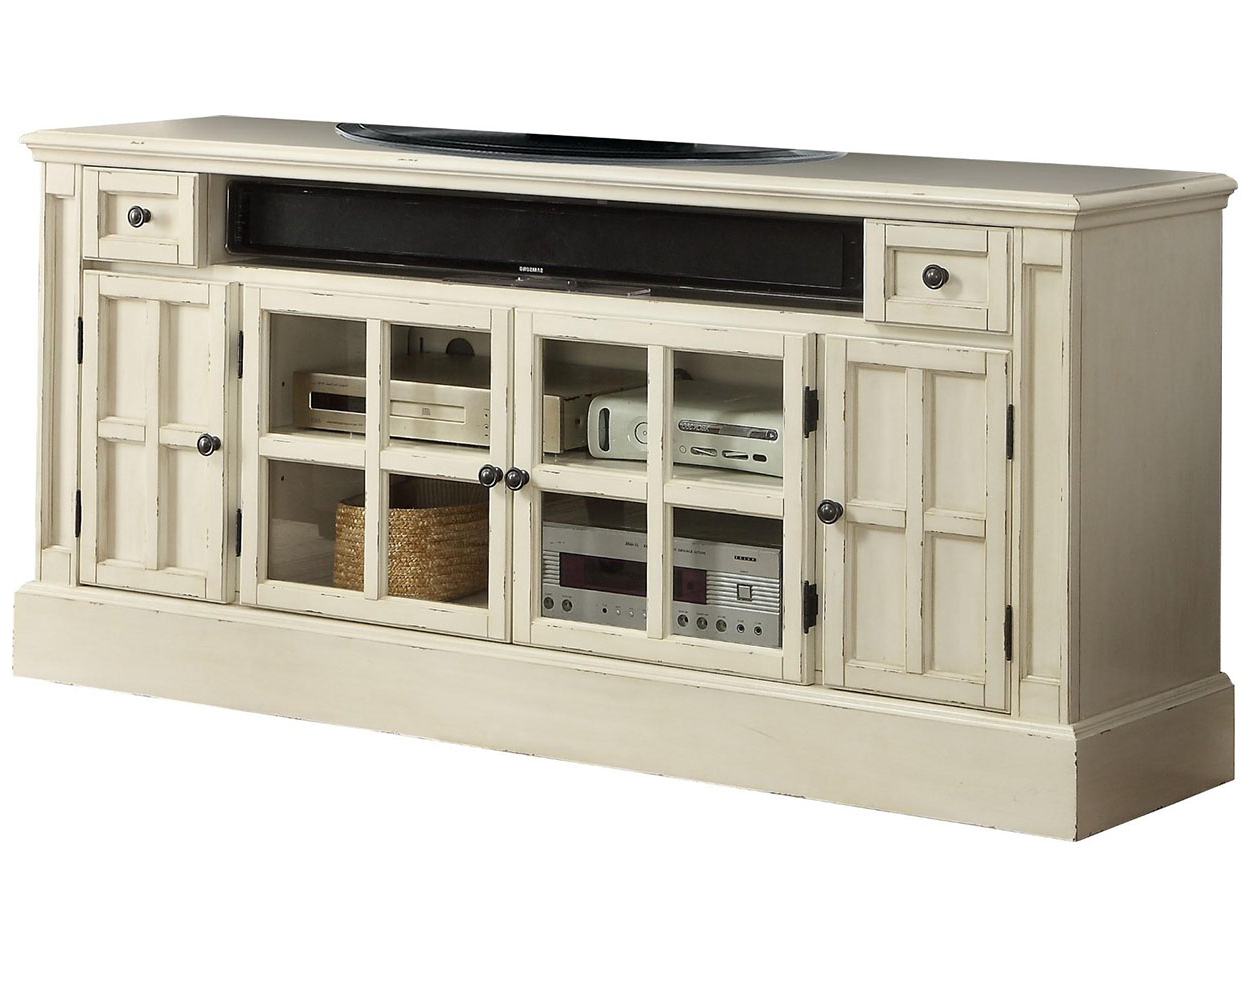 Tv Stands 50 – 75 Inches Wide Intended For Well Known Vista 68 Inch Tv Stands (View 15 of 20)